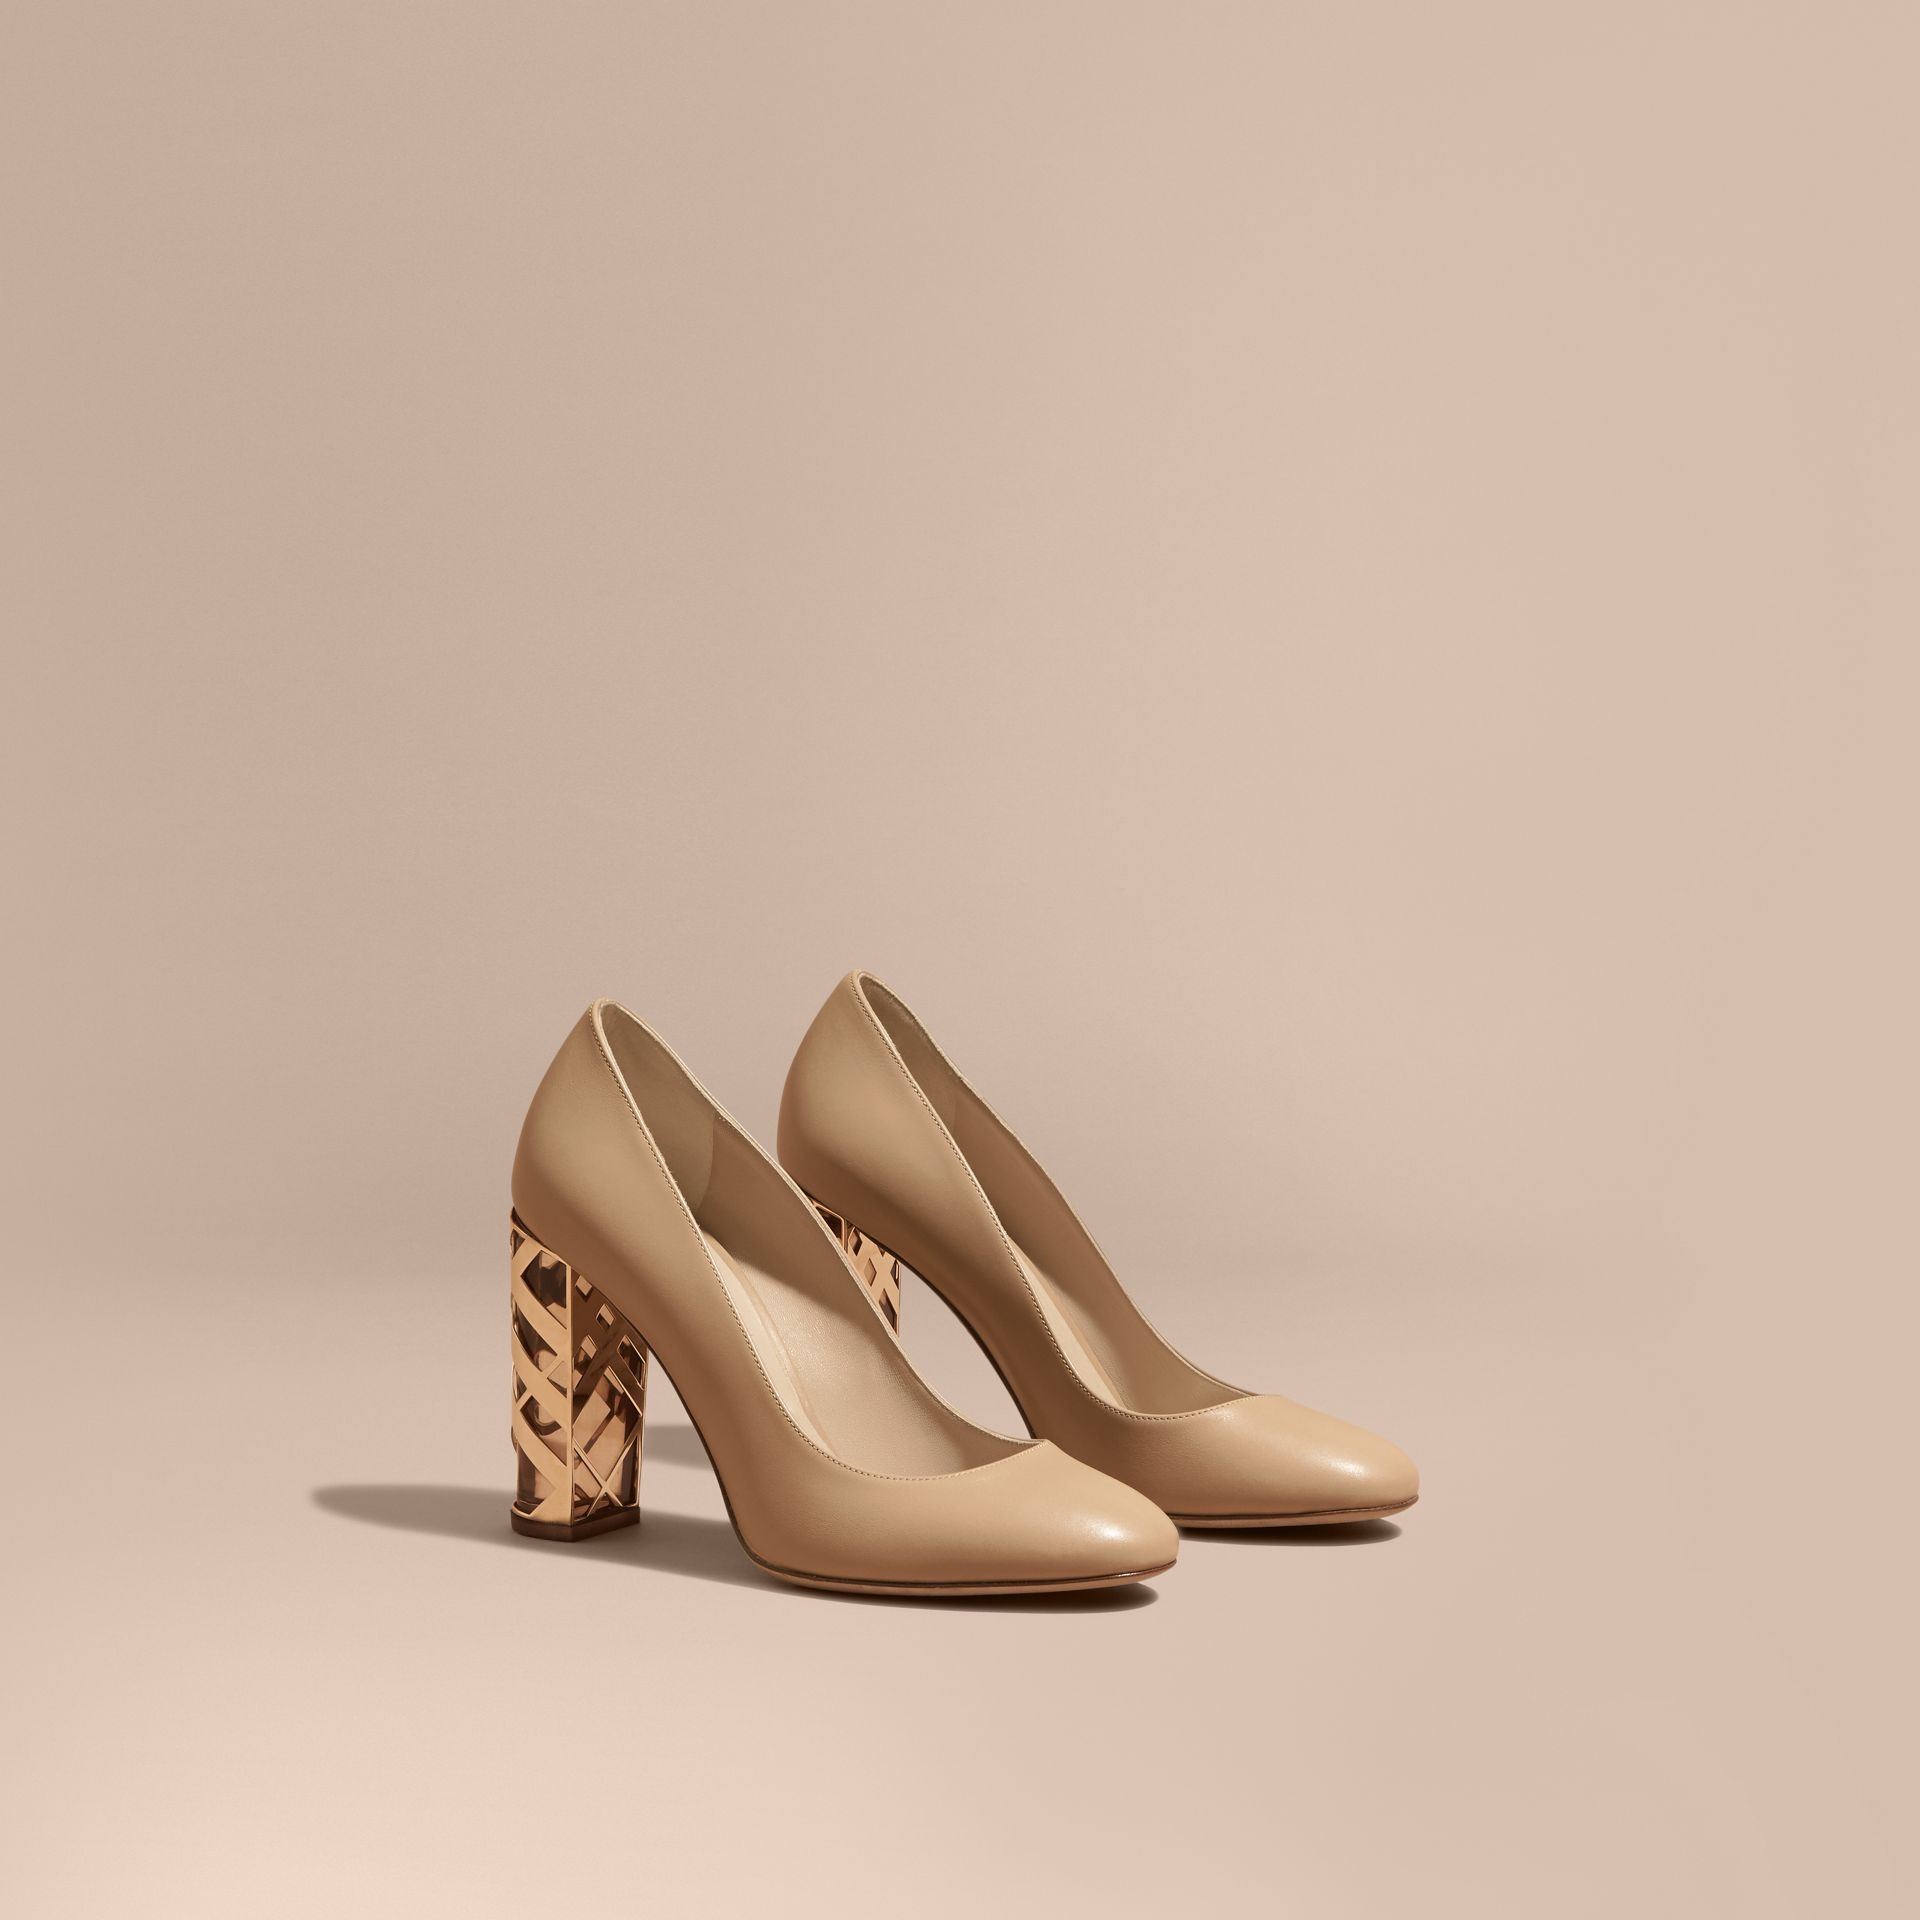 Light nude Check Heel Leather Pumps Light Nude - gallery image 1